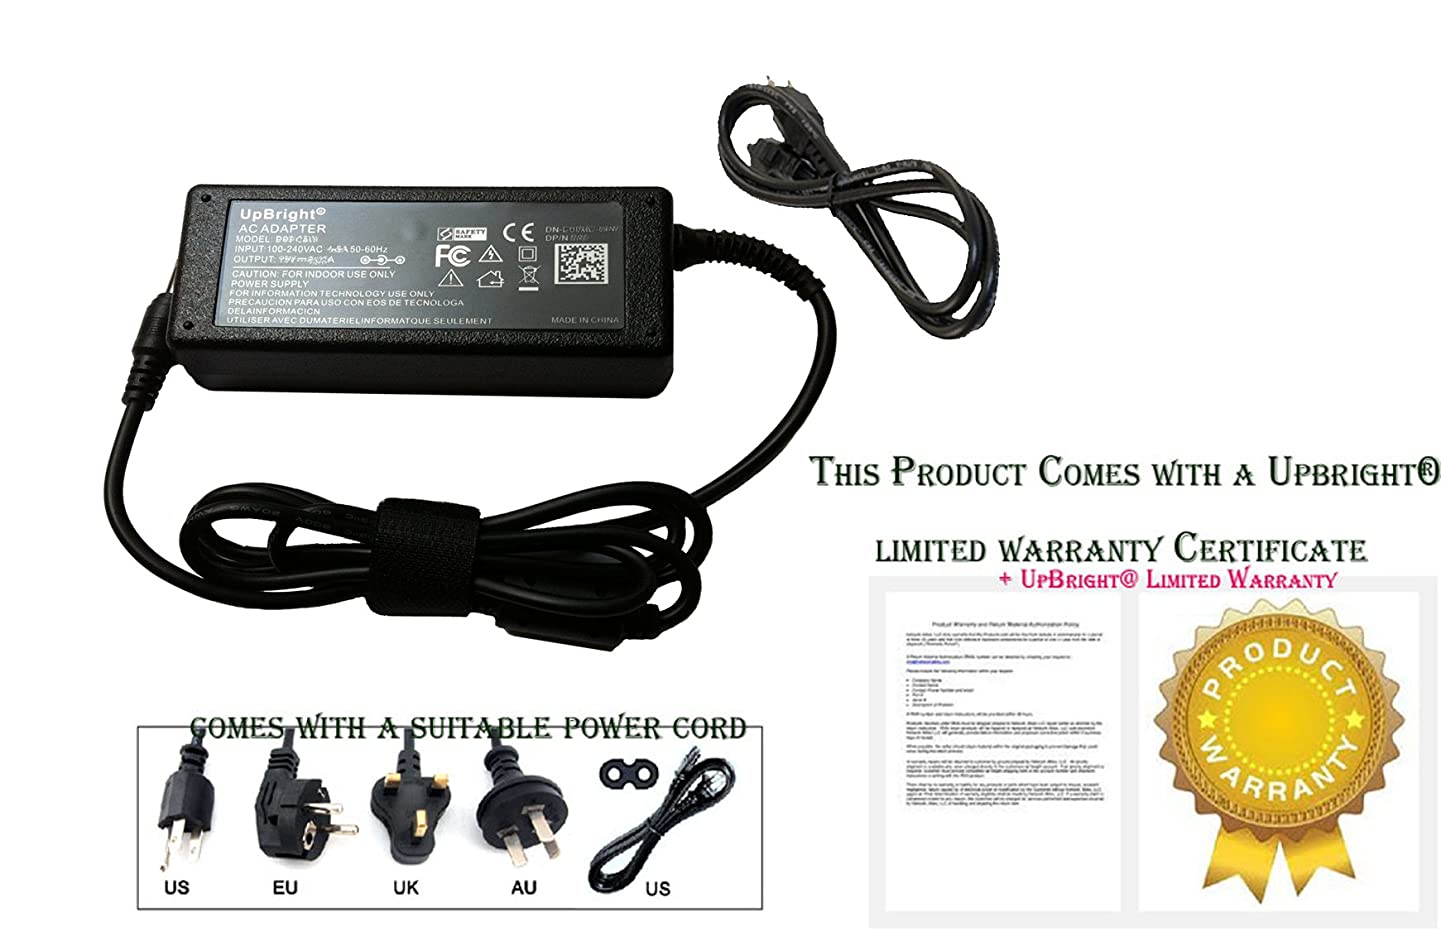 UpBright AC/DC Adapter For Weider ICON Health & Fitness WESY7873.0 WESY7873.1 WESY7873.2 WESY7873.3 WESY7873.4 WESY7874.4 Exercise Machine Power Supply Cord Cable Charger